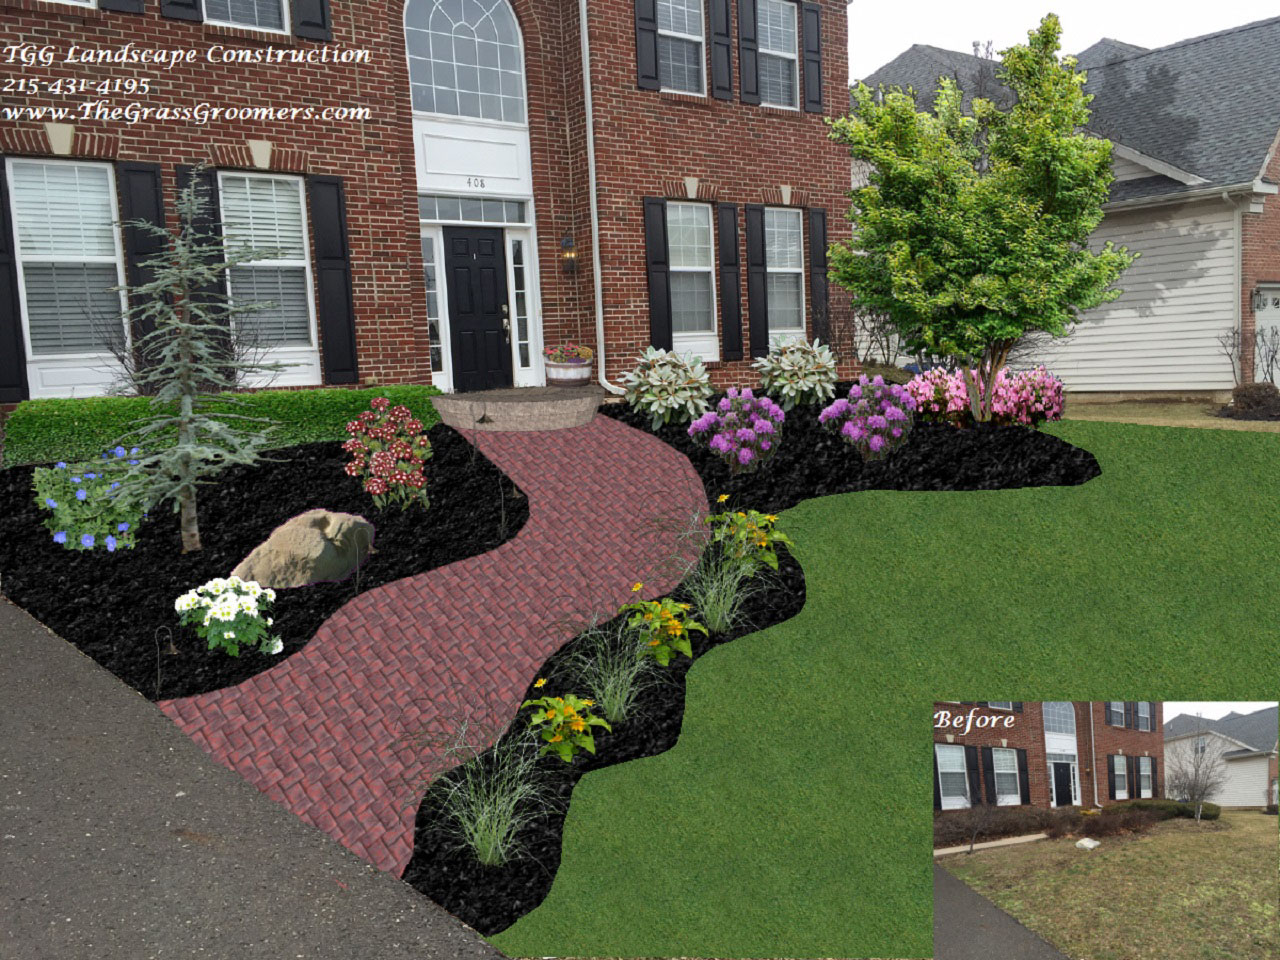 Landscape Design & Installation by TGG Landscape Construction